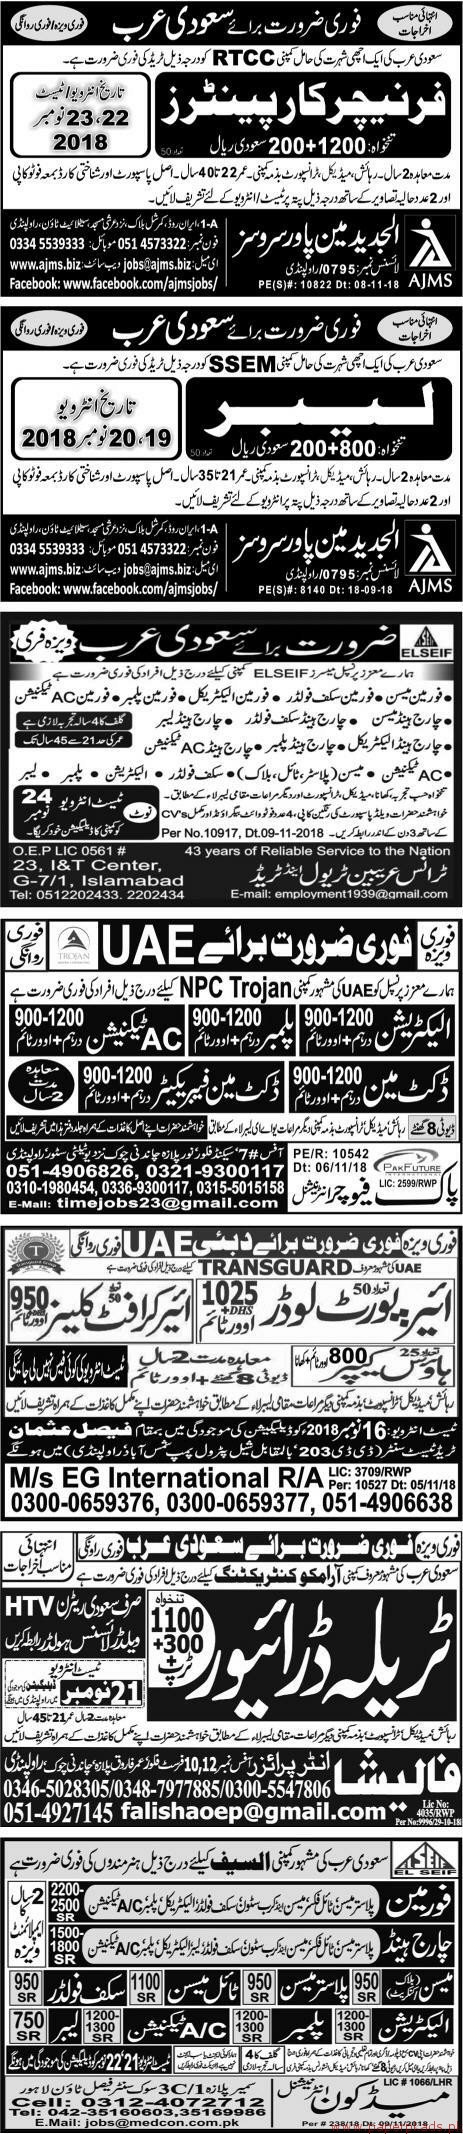 Multiple Jobs - Page 3 - Express Newspaper Jobs 16 November 2018